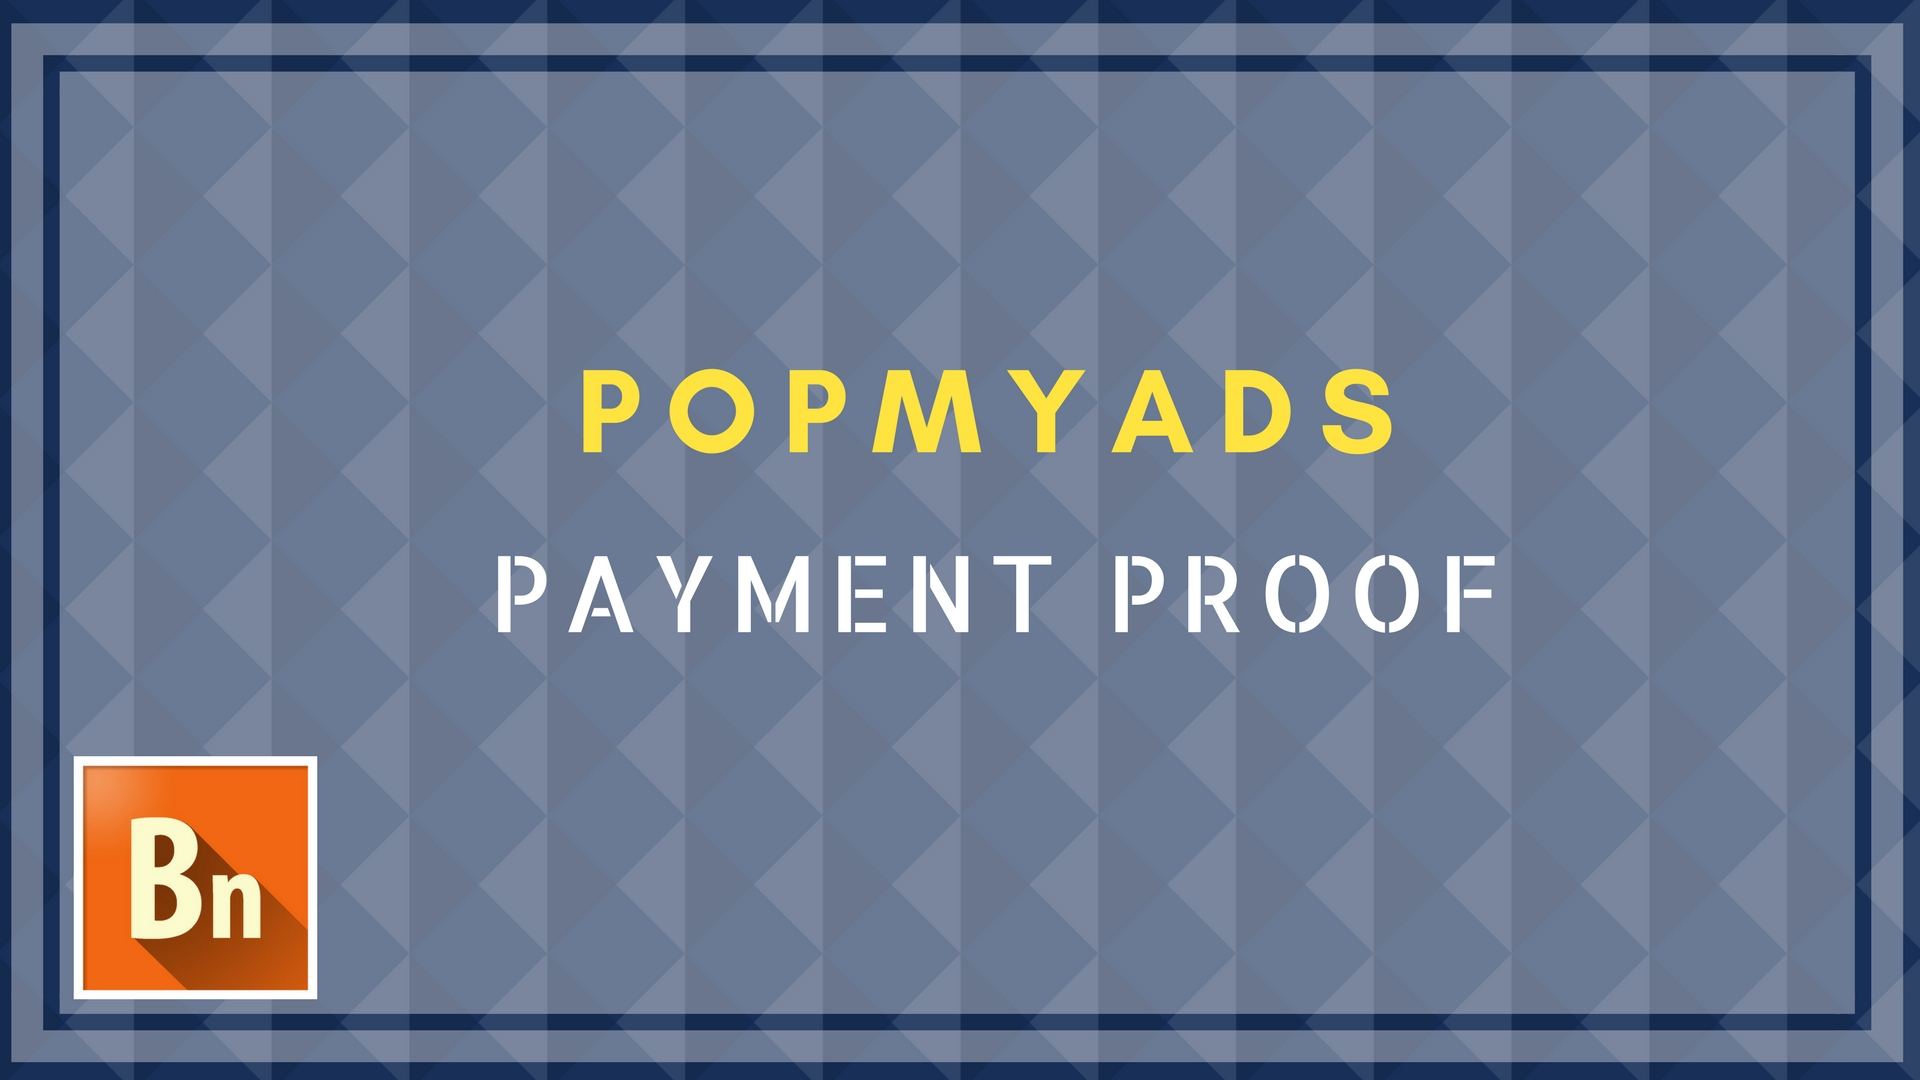 Popmyads Payment Proof for Publishers 2018